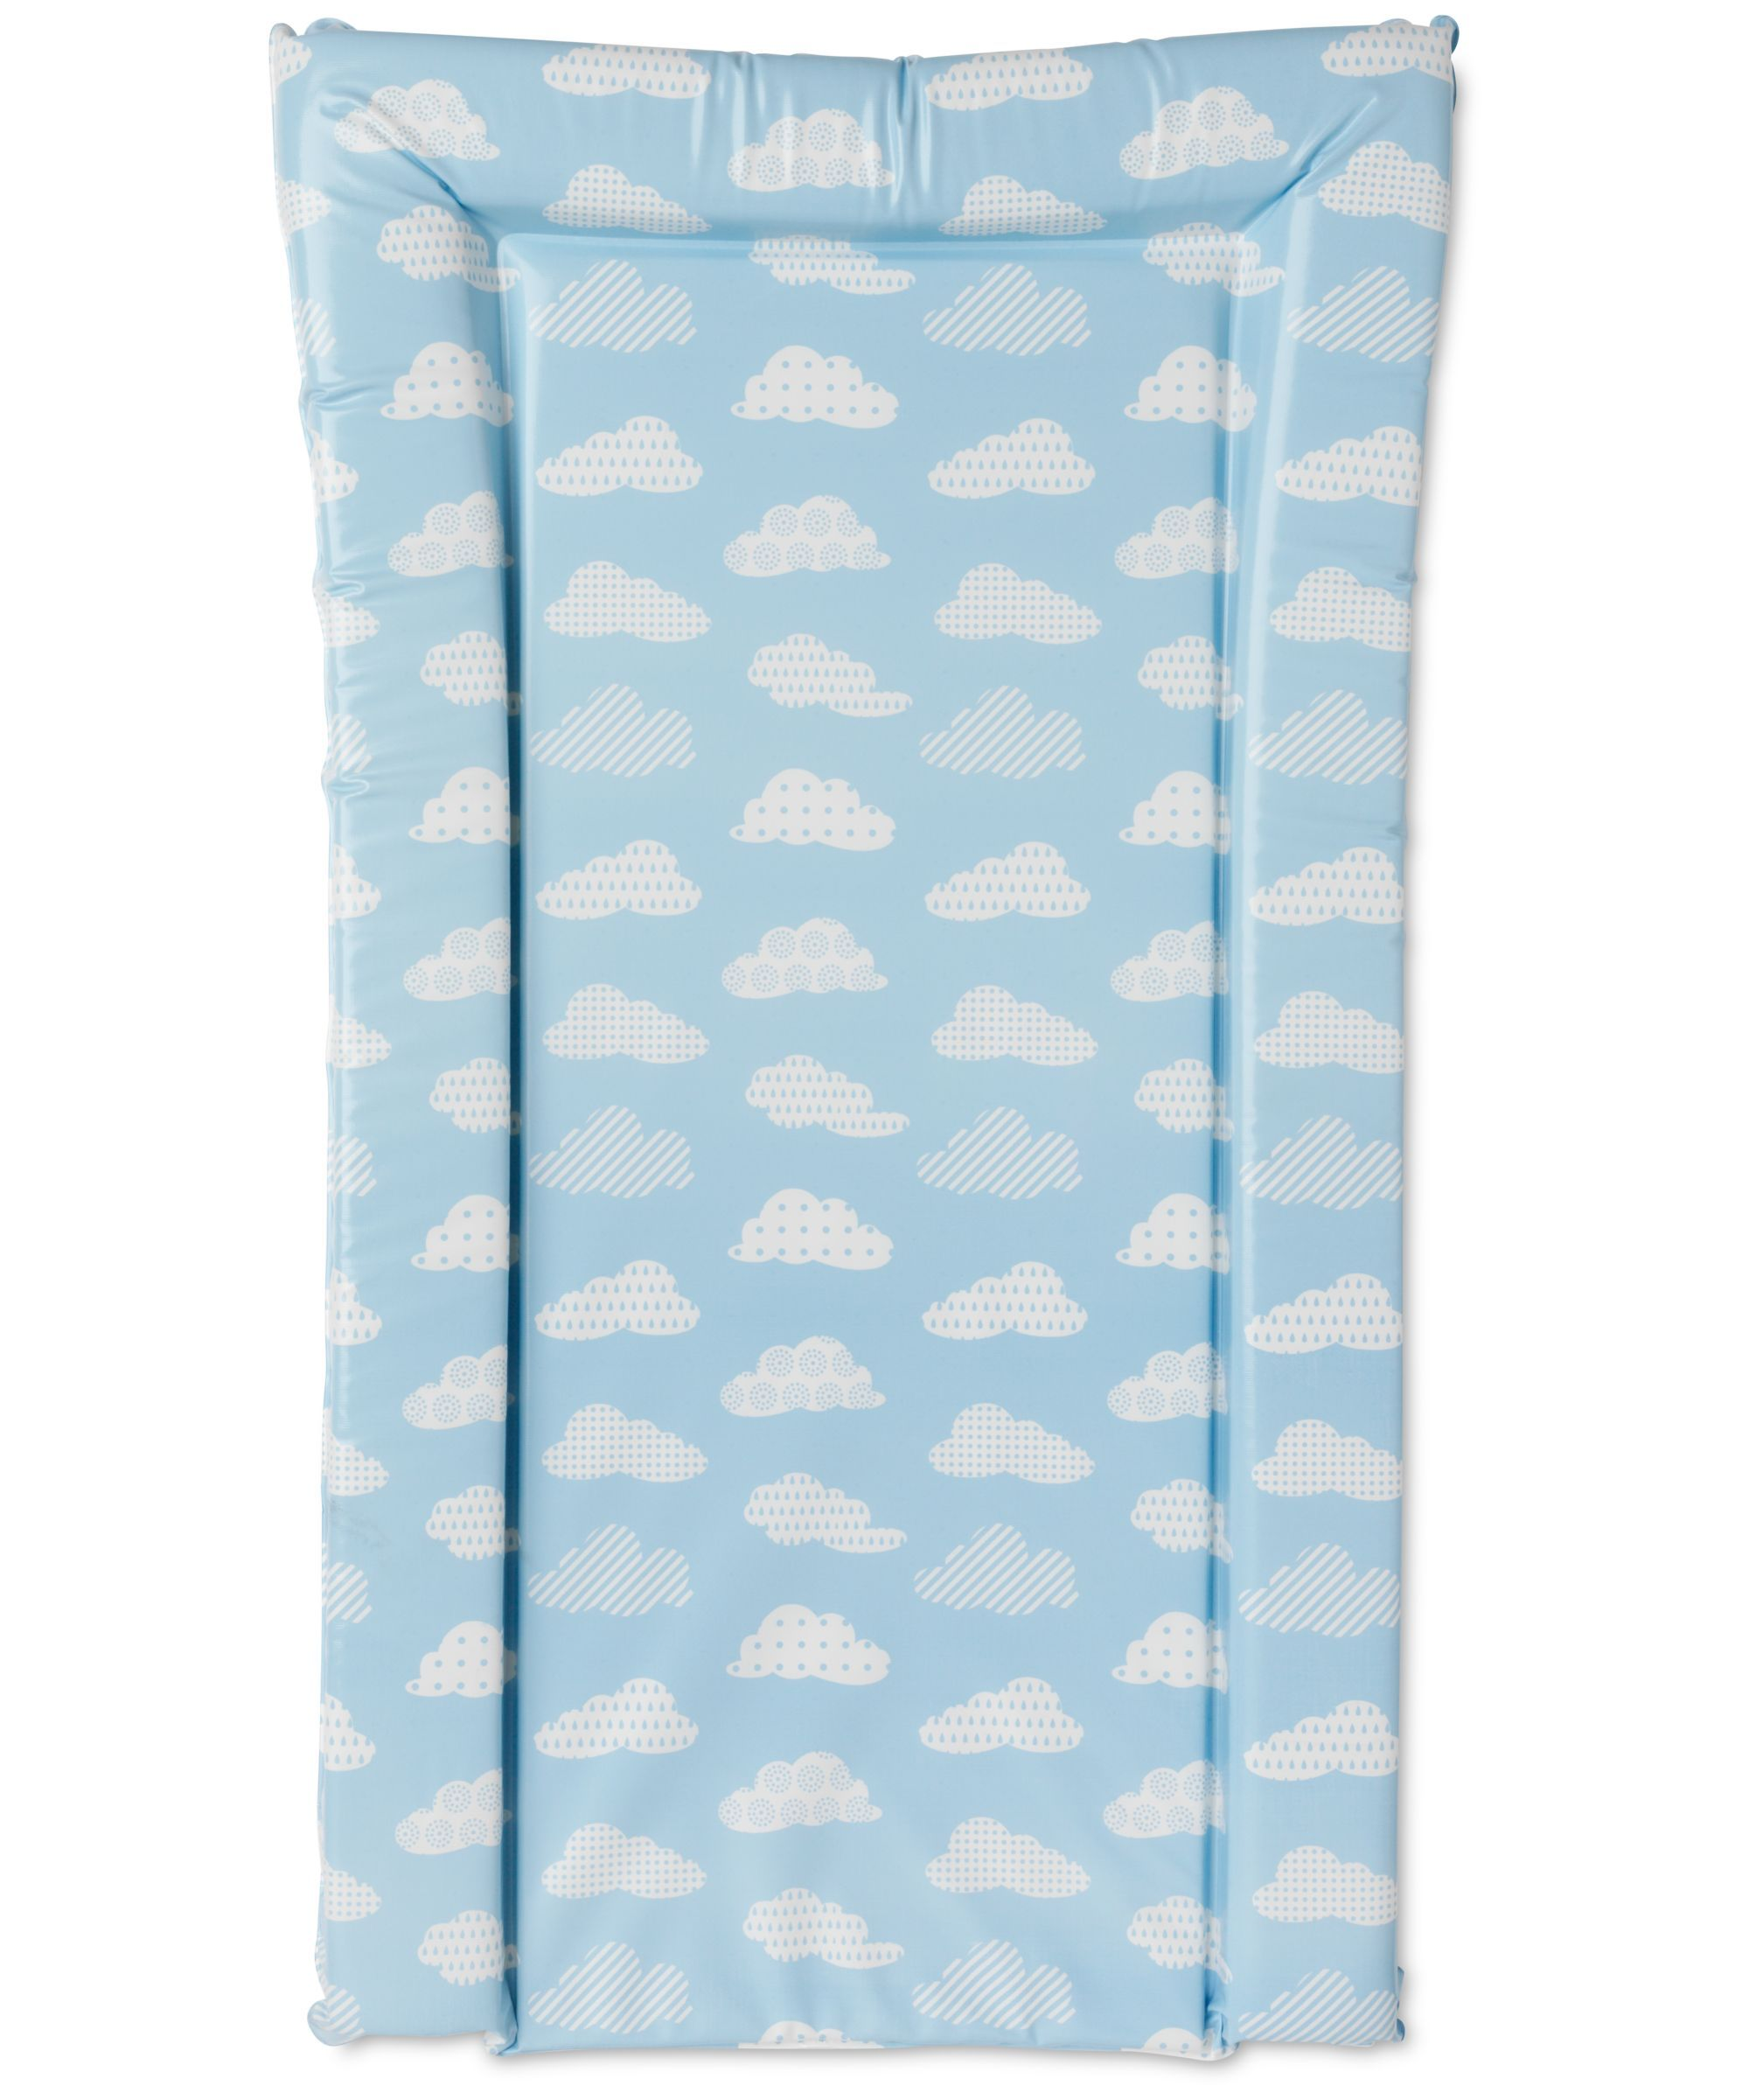 buy popular 047d6 80c60 Mothercare Changing Mat- Blue Clouds | baby | Baby changing ...